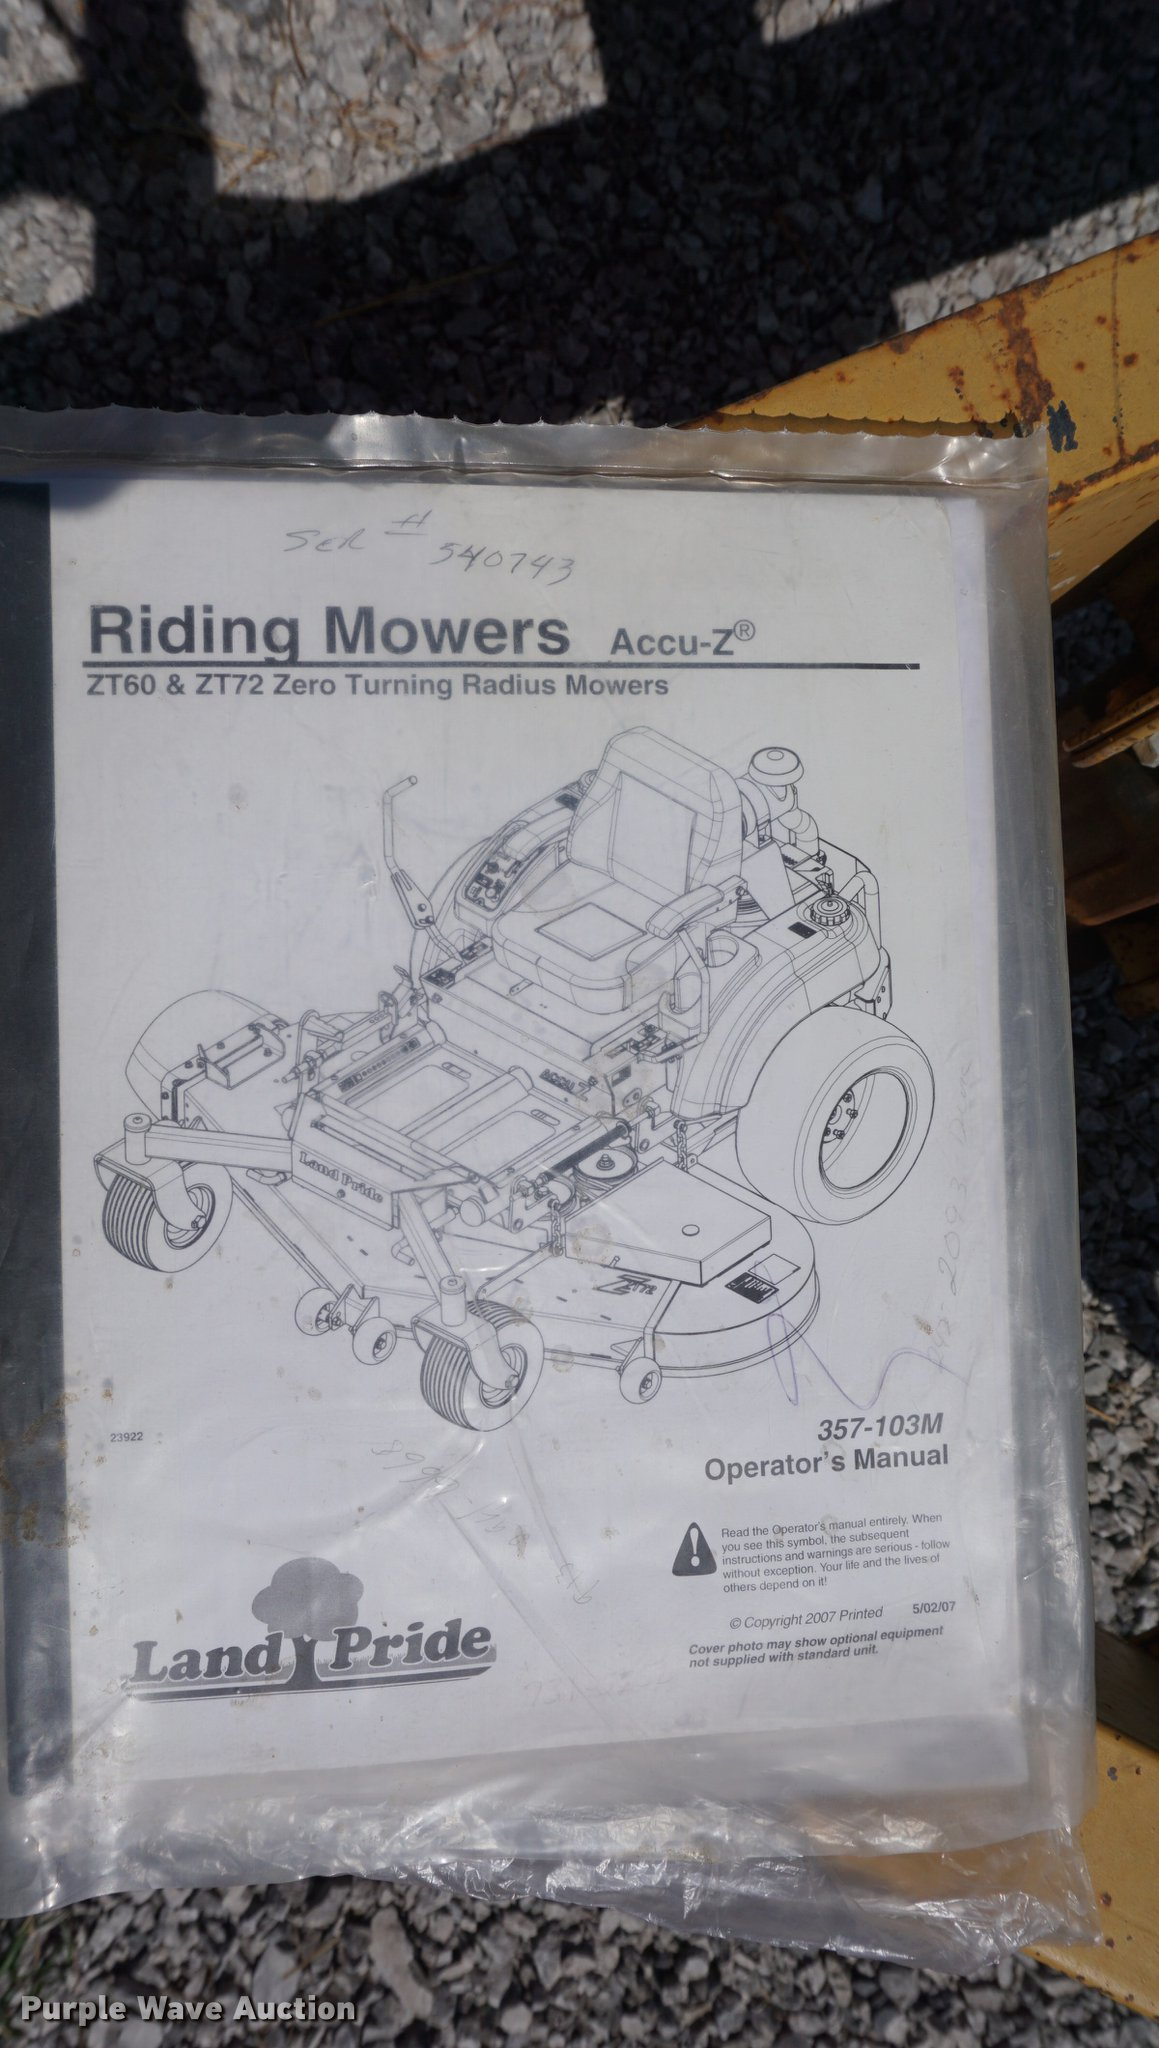 hight resolution of  engine diagram murray land pride zt60 lawn mower item de3202 sold april 18 ve